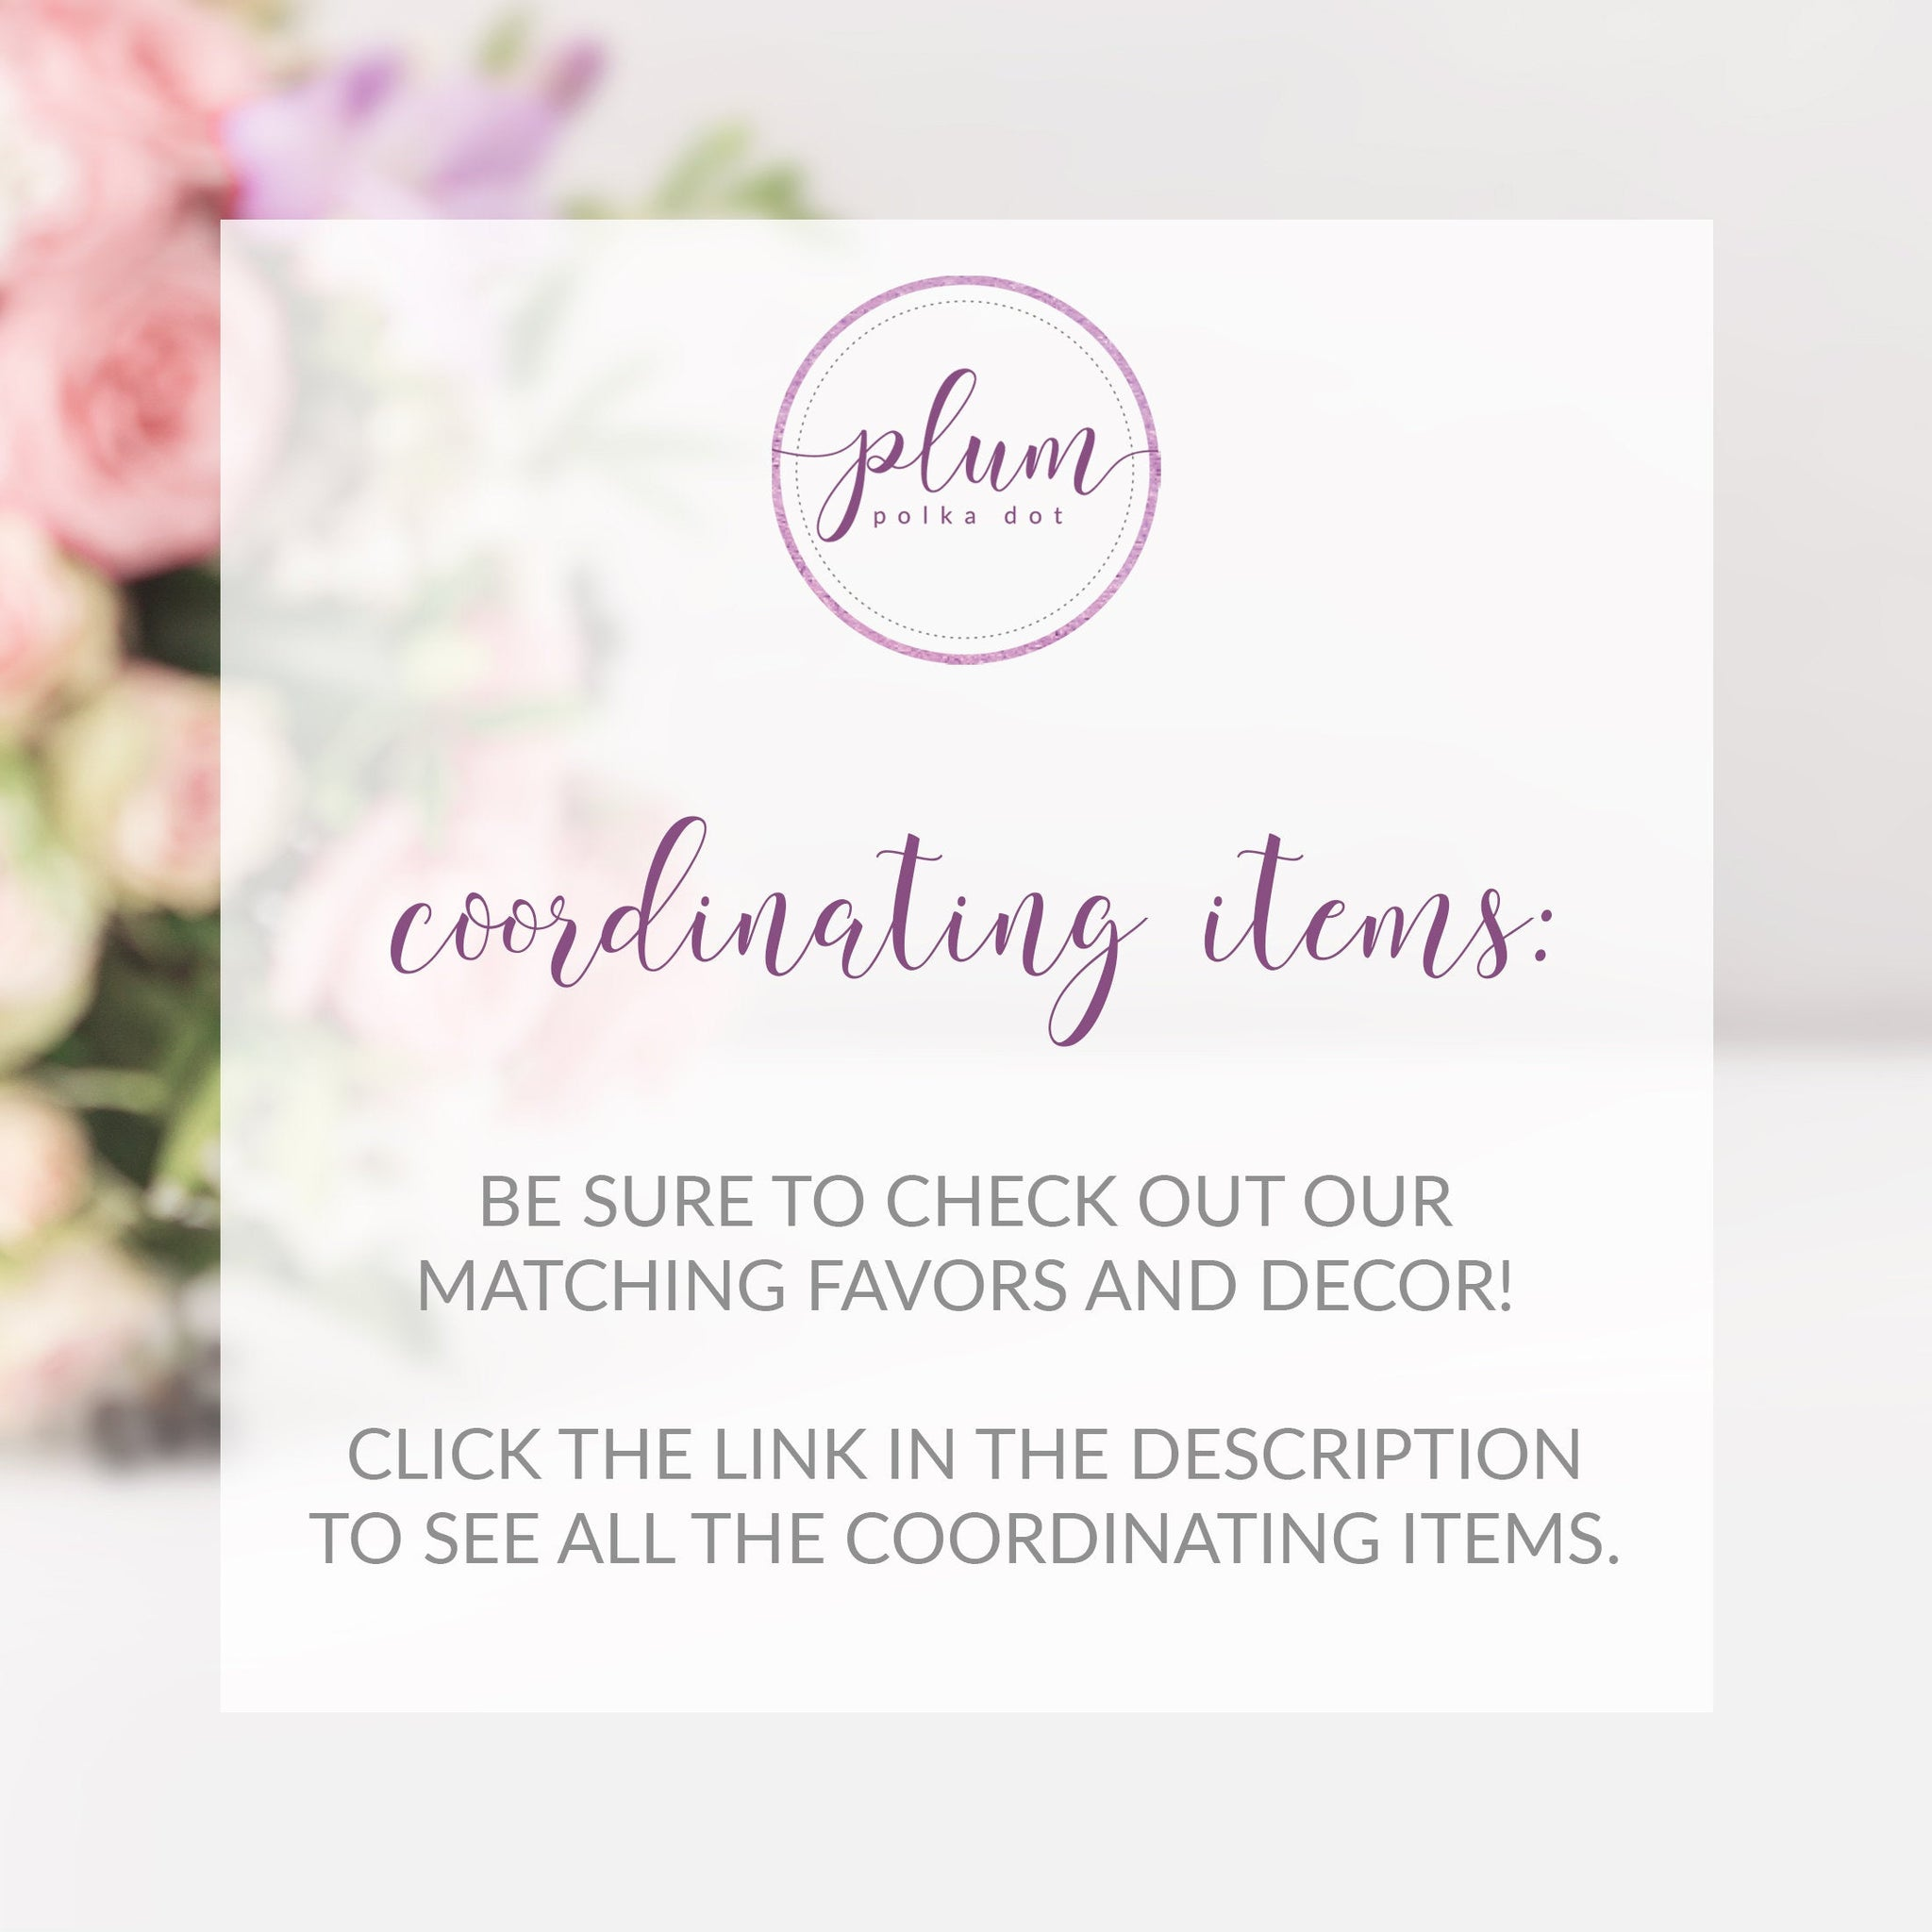 Tea Party Bridal Shower Invitation Template, Pink Floral Bridal Shower Invite Printable, Editable DIGITAL DOWNLOAD - FR100 - @PlumPolkaDot